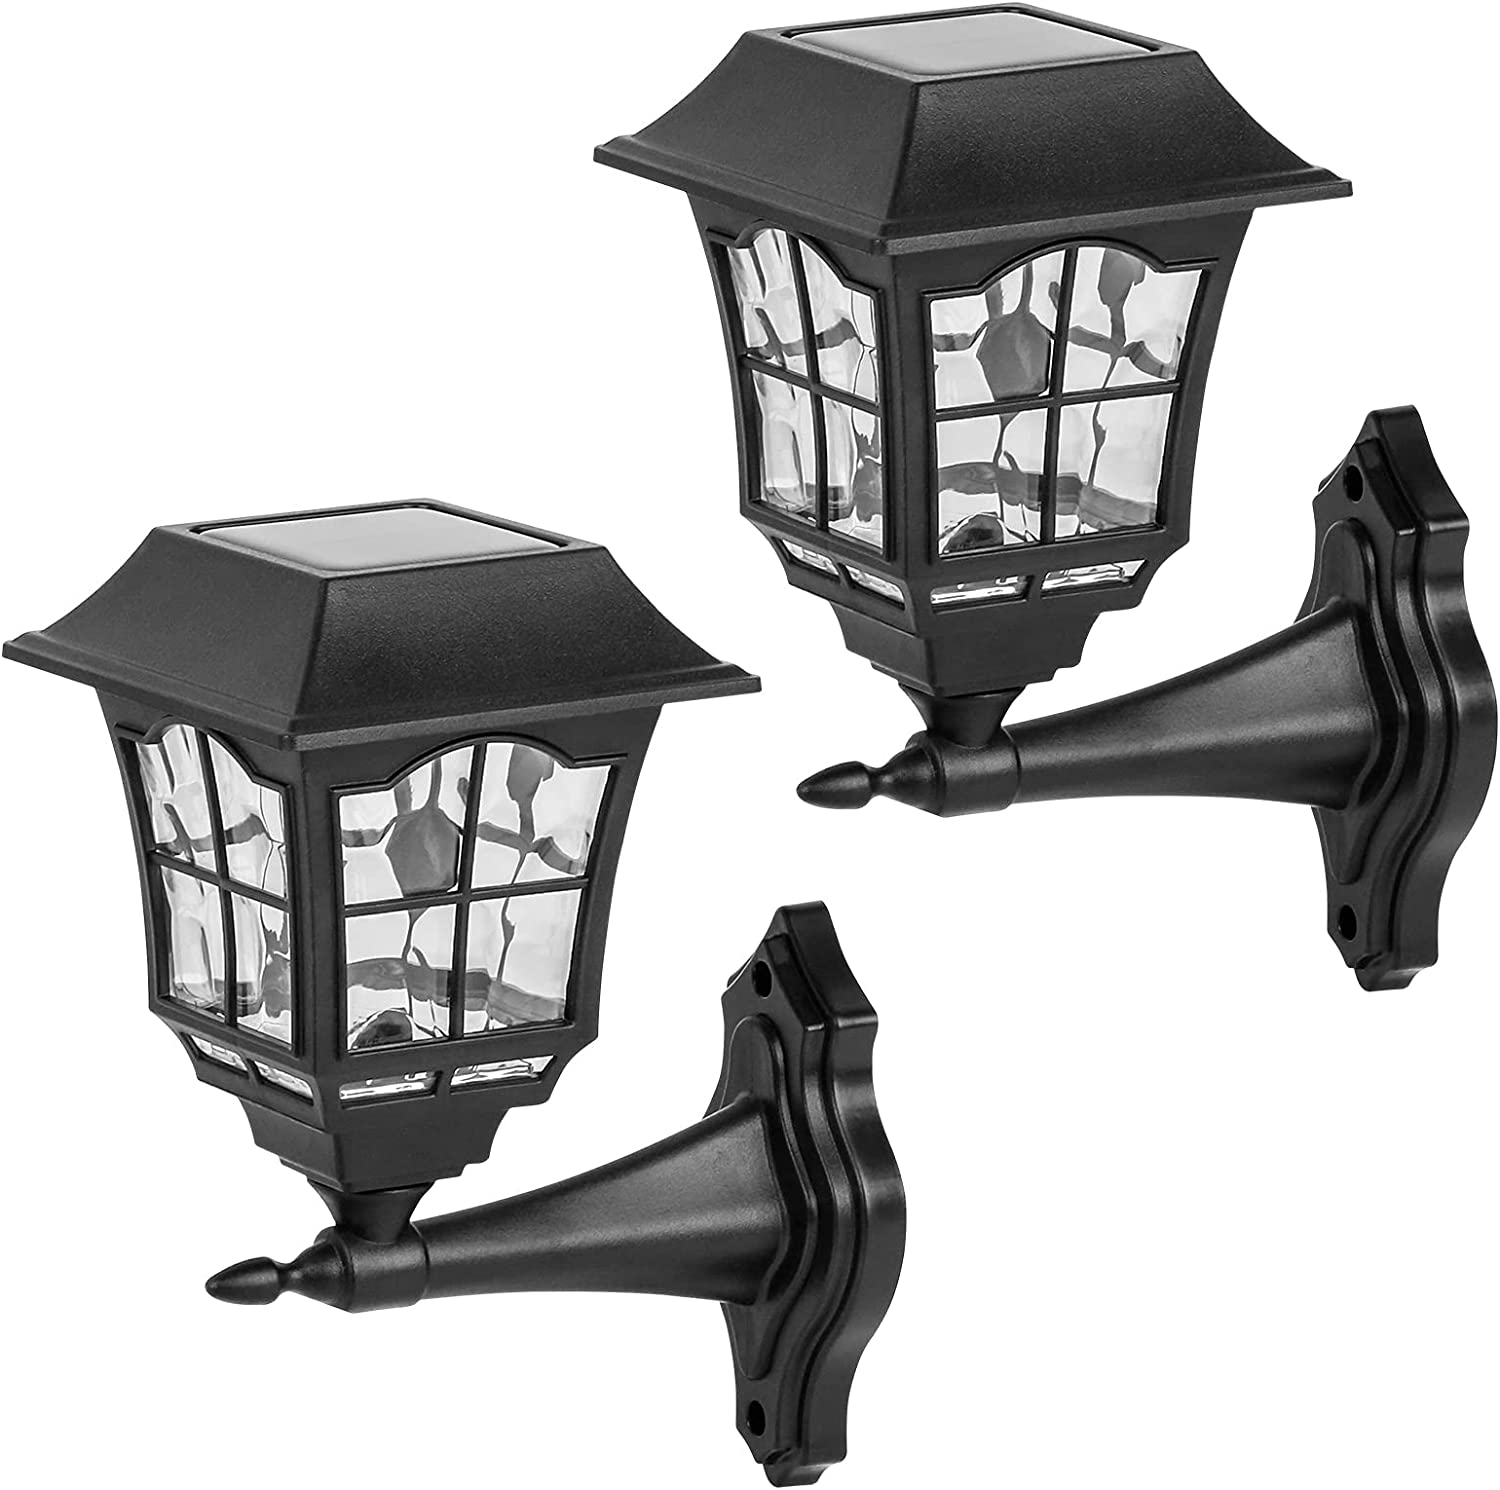 Viewsun 2 Pack Solar Wall Lanterns, Outdoor Solar Lights Wall Sconce Decorative Solar Led Light with Wall Mount Kit for Front Porch, Garden Decor